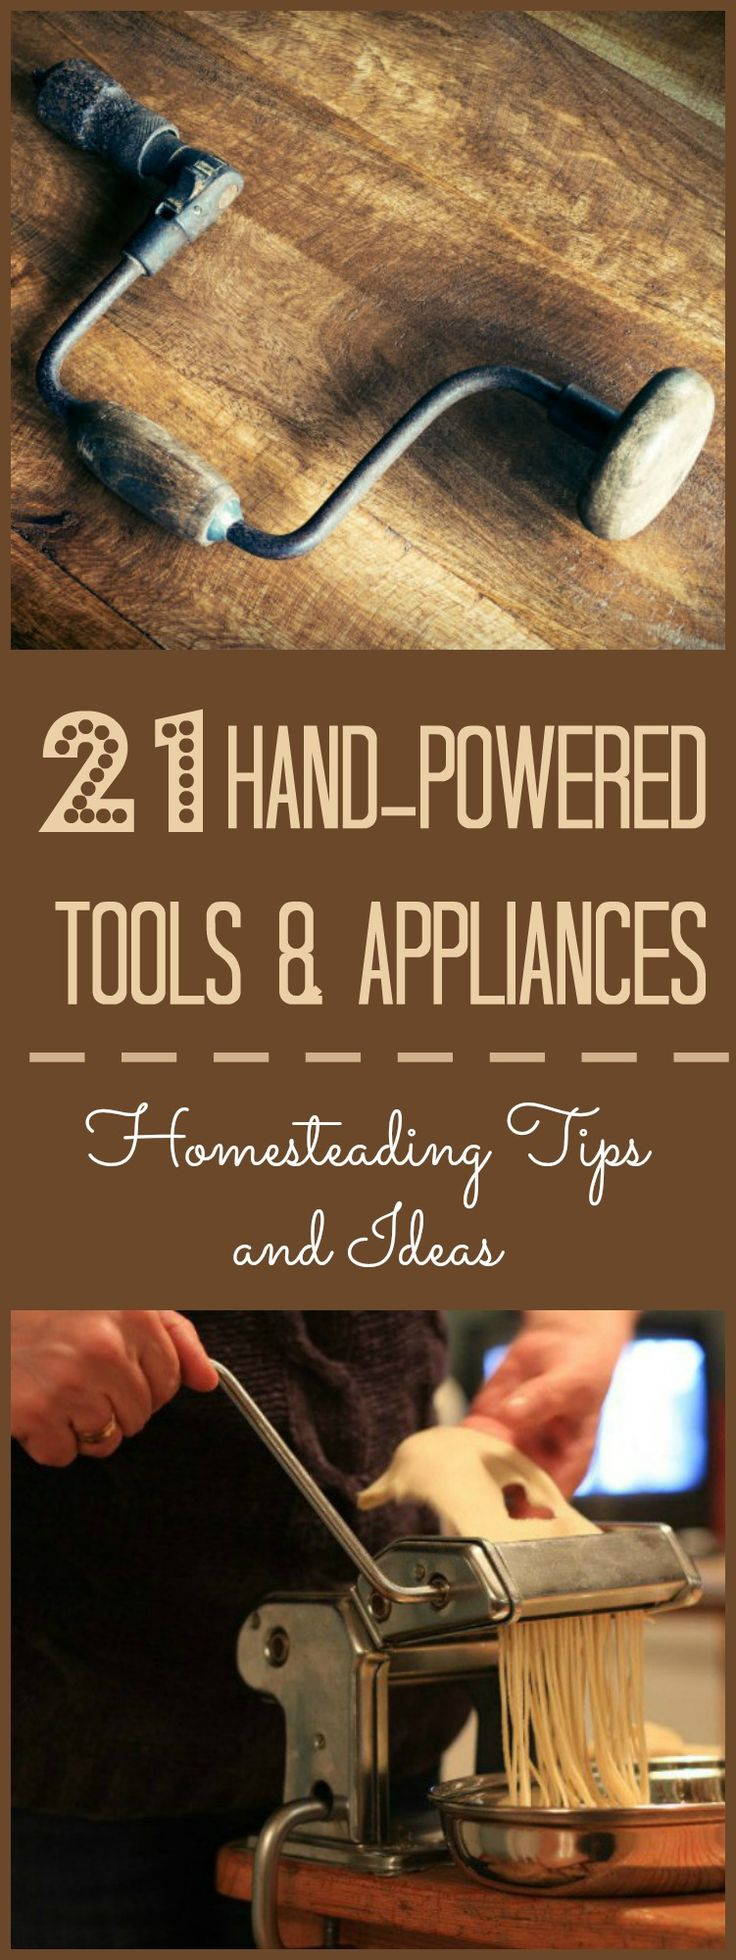 21 Hand-Powered Tools & Appliances | The Power Of Primitive Tools